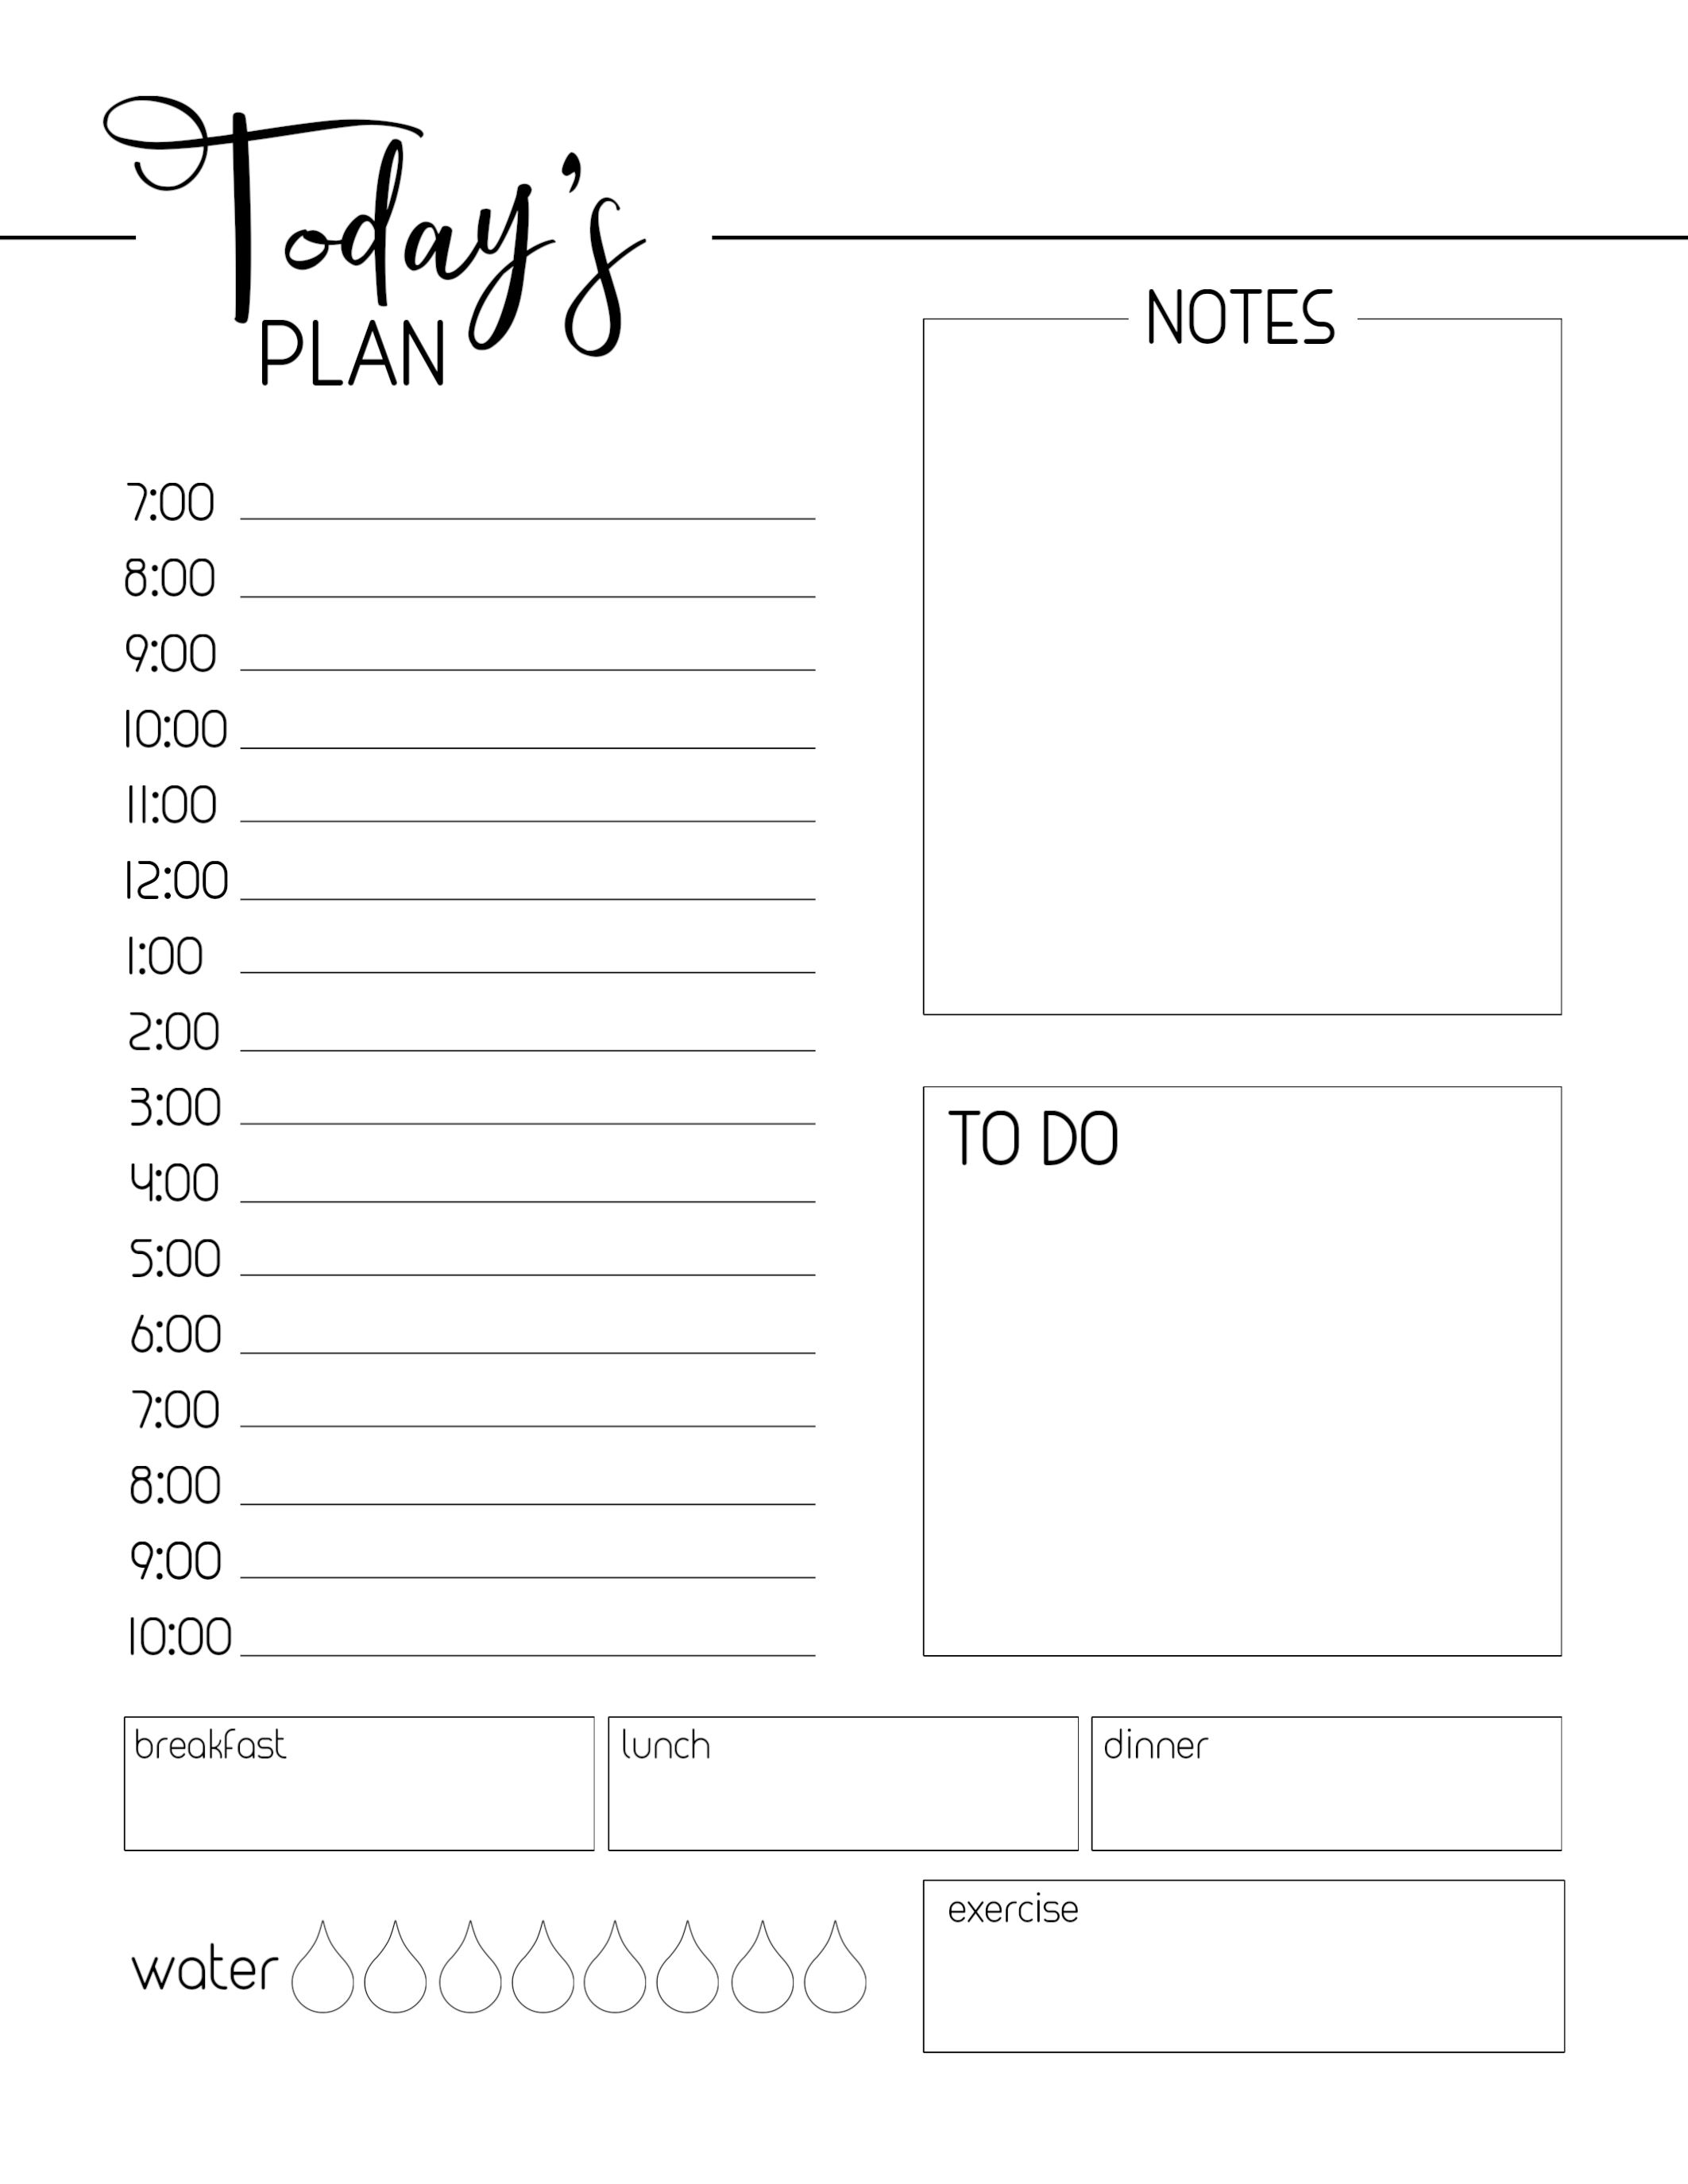 image regarding Daily Planner Template called Totally free Printable Day by day Planner Template - Paper Path Design and style